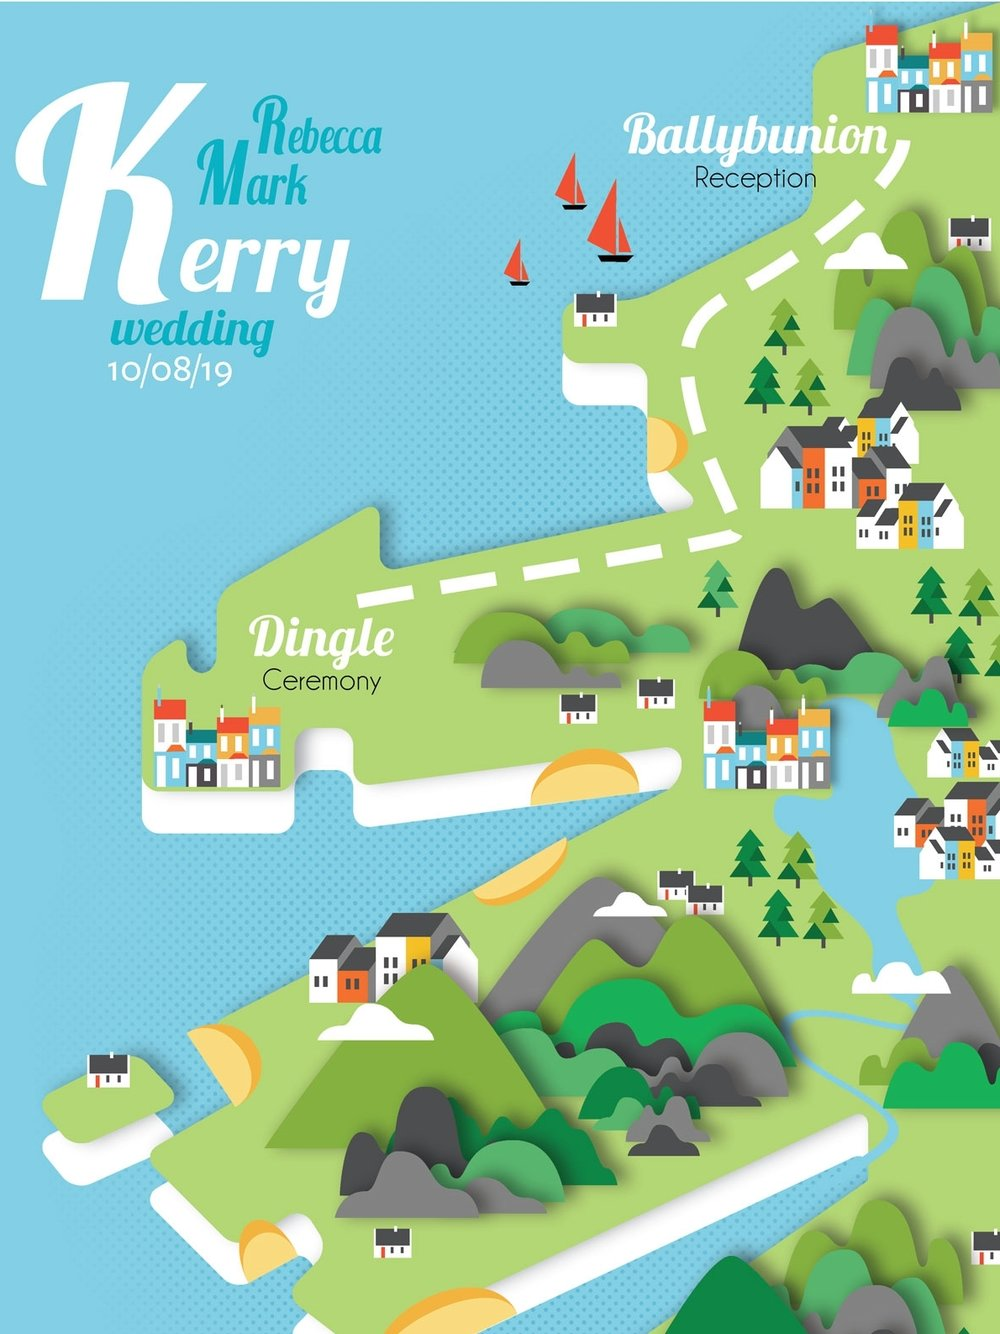 Kerry-map-wedding-invite.jpg